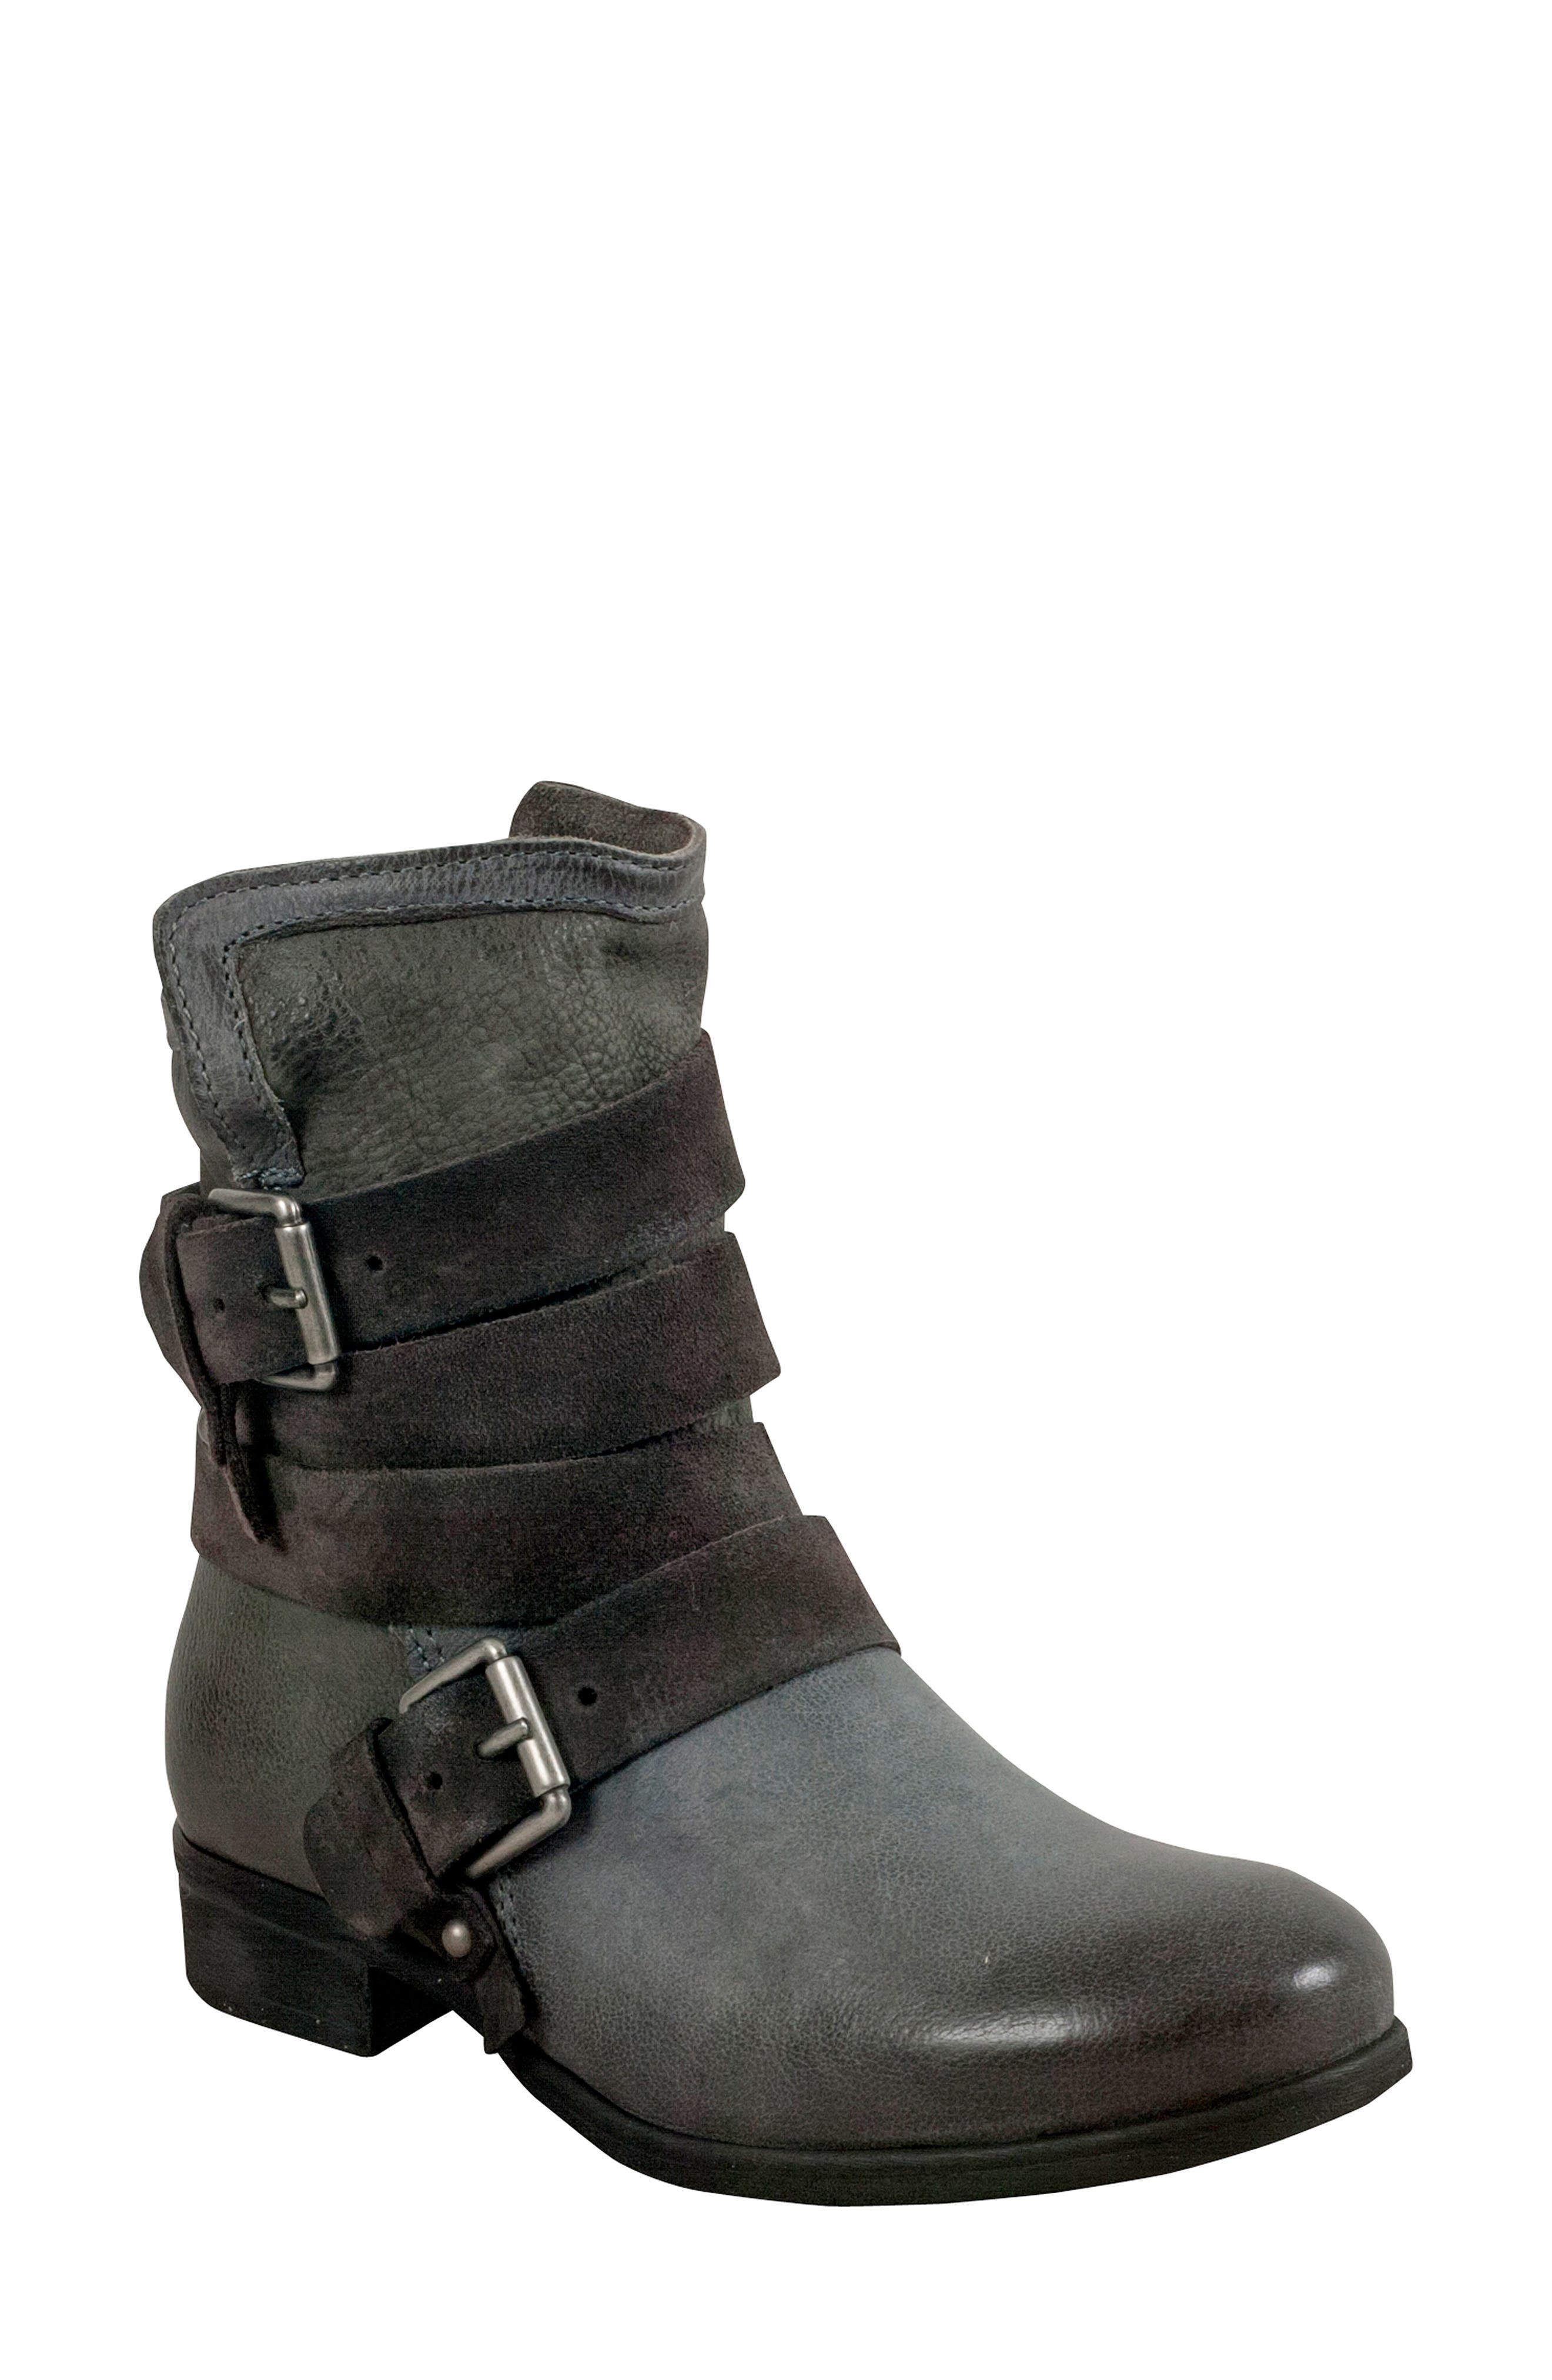 Savvy Buckle Bootie,                             Main thumbnail 1, color,                             GRANITE LEATHER